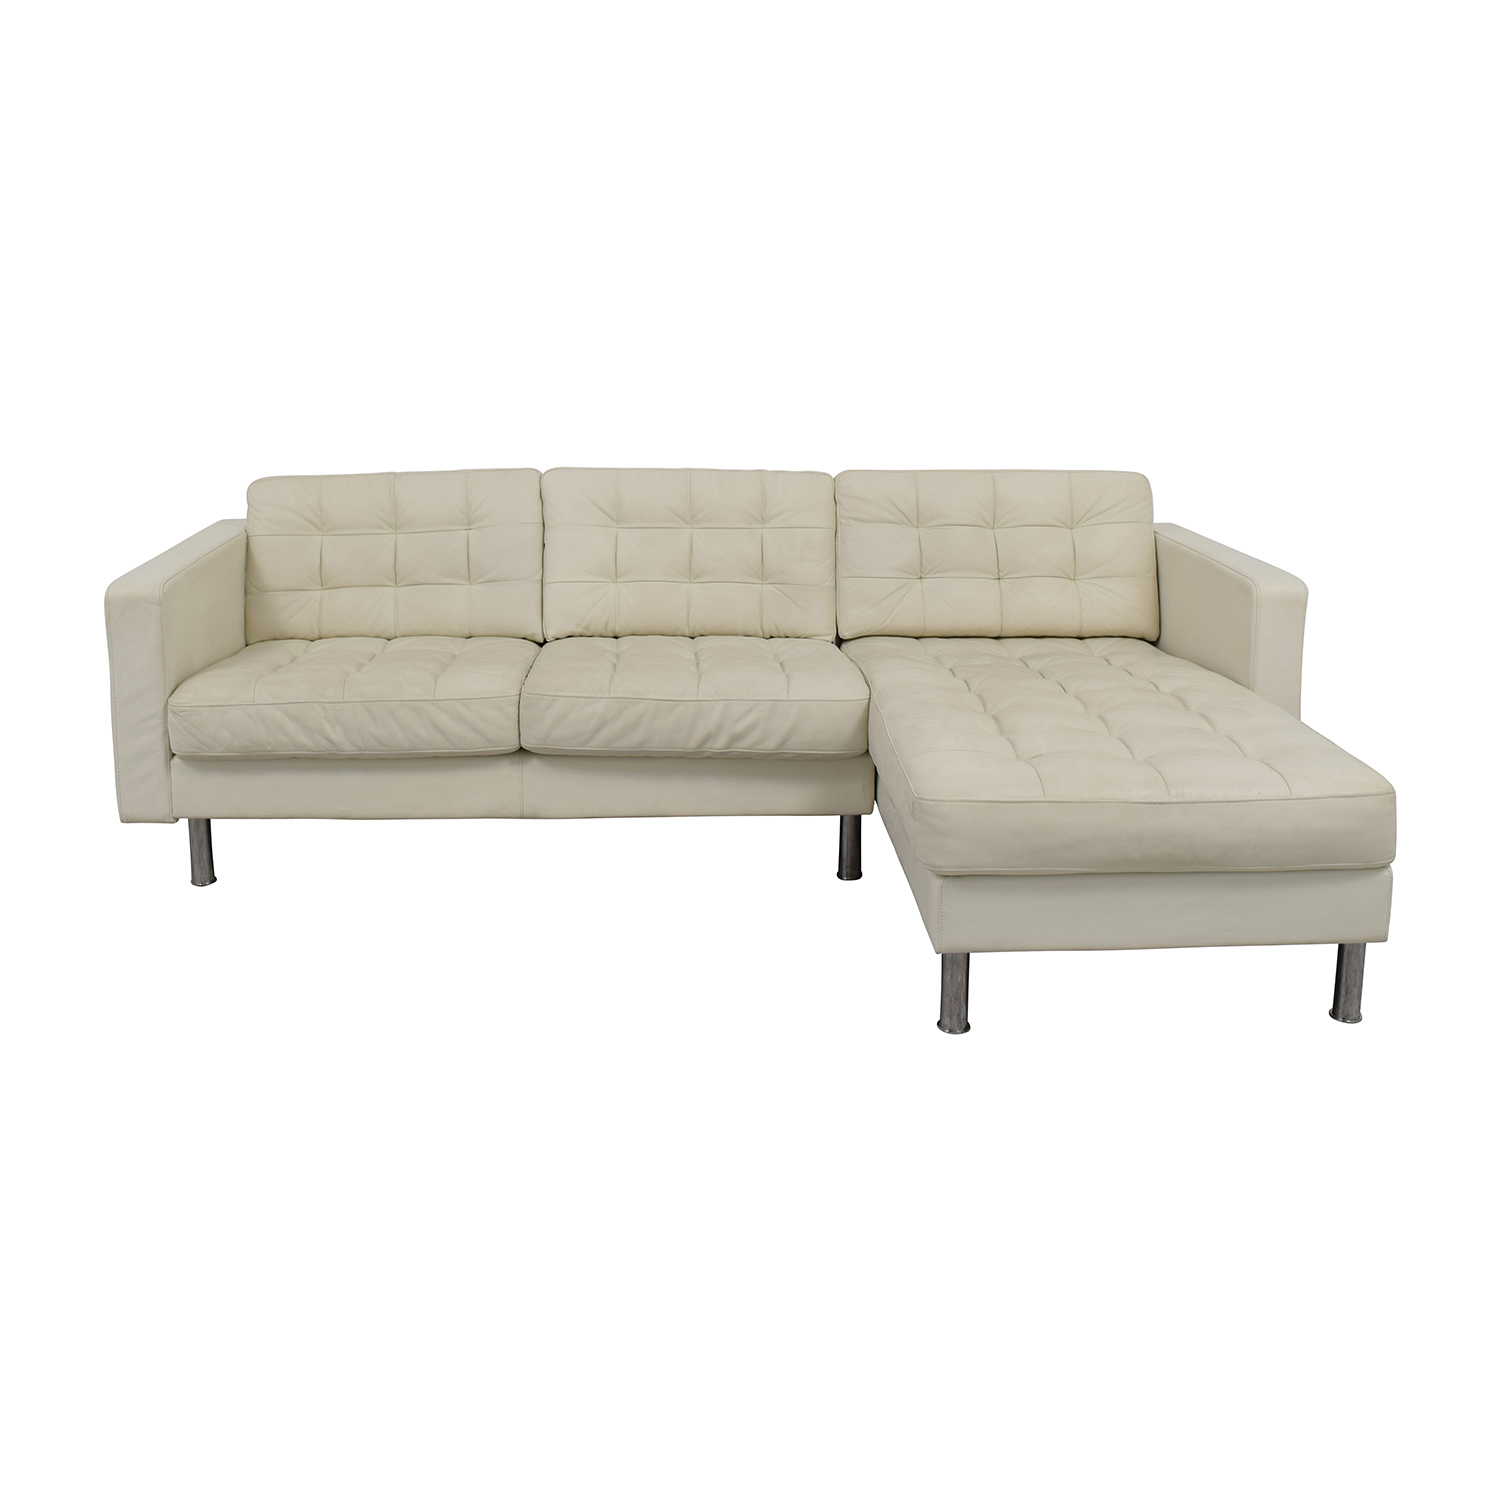 69% OFF - IKEA IKEA Landskrona Leather Sectional / Sofas